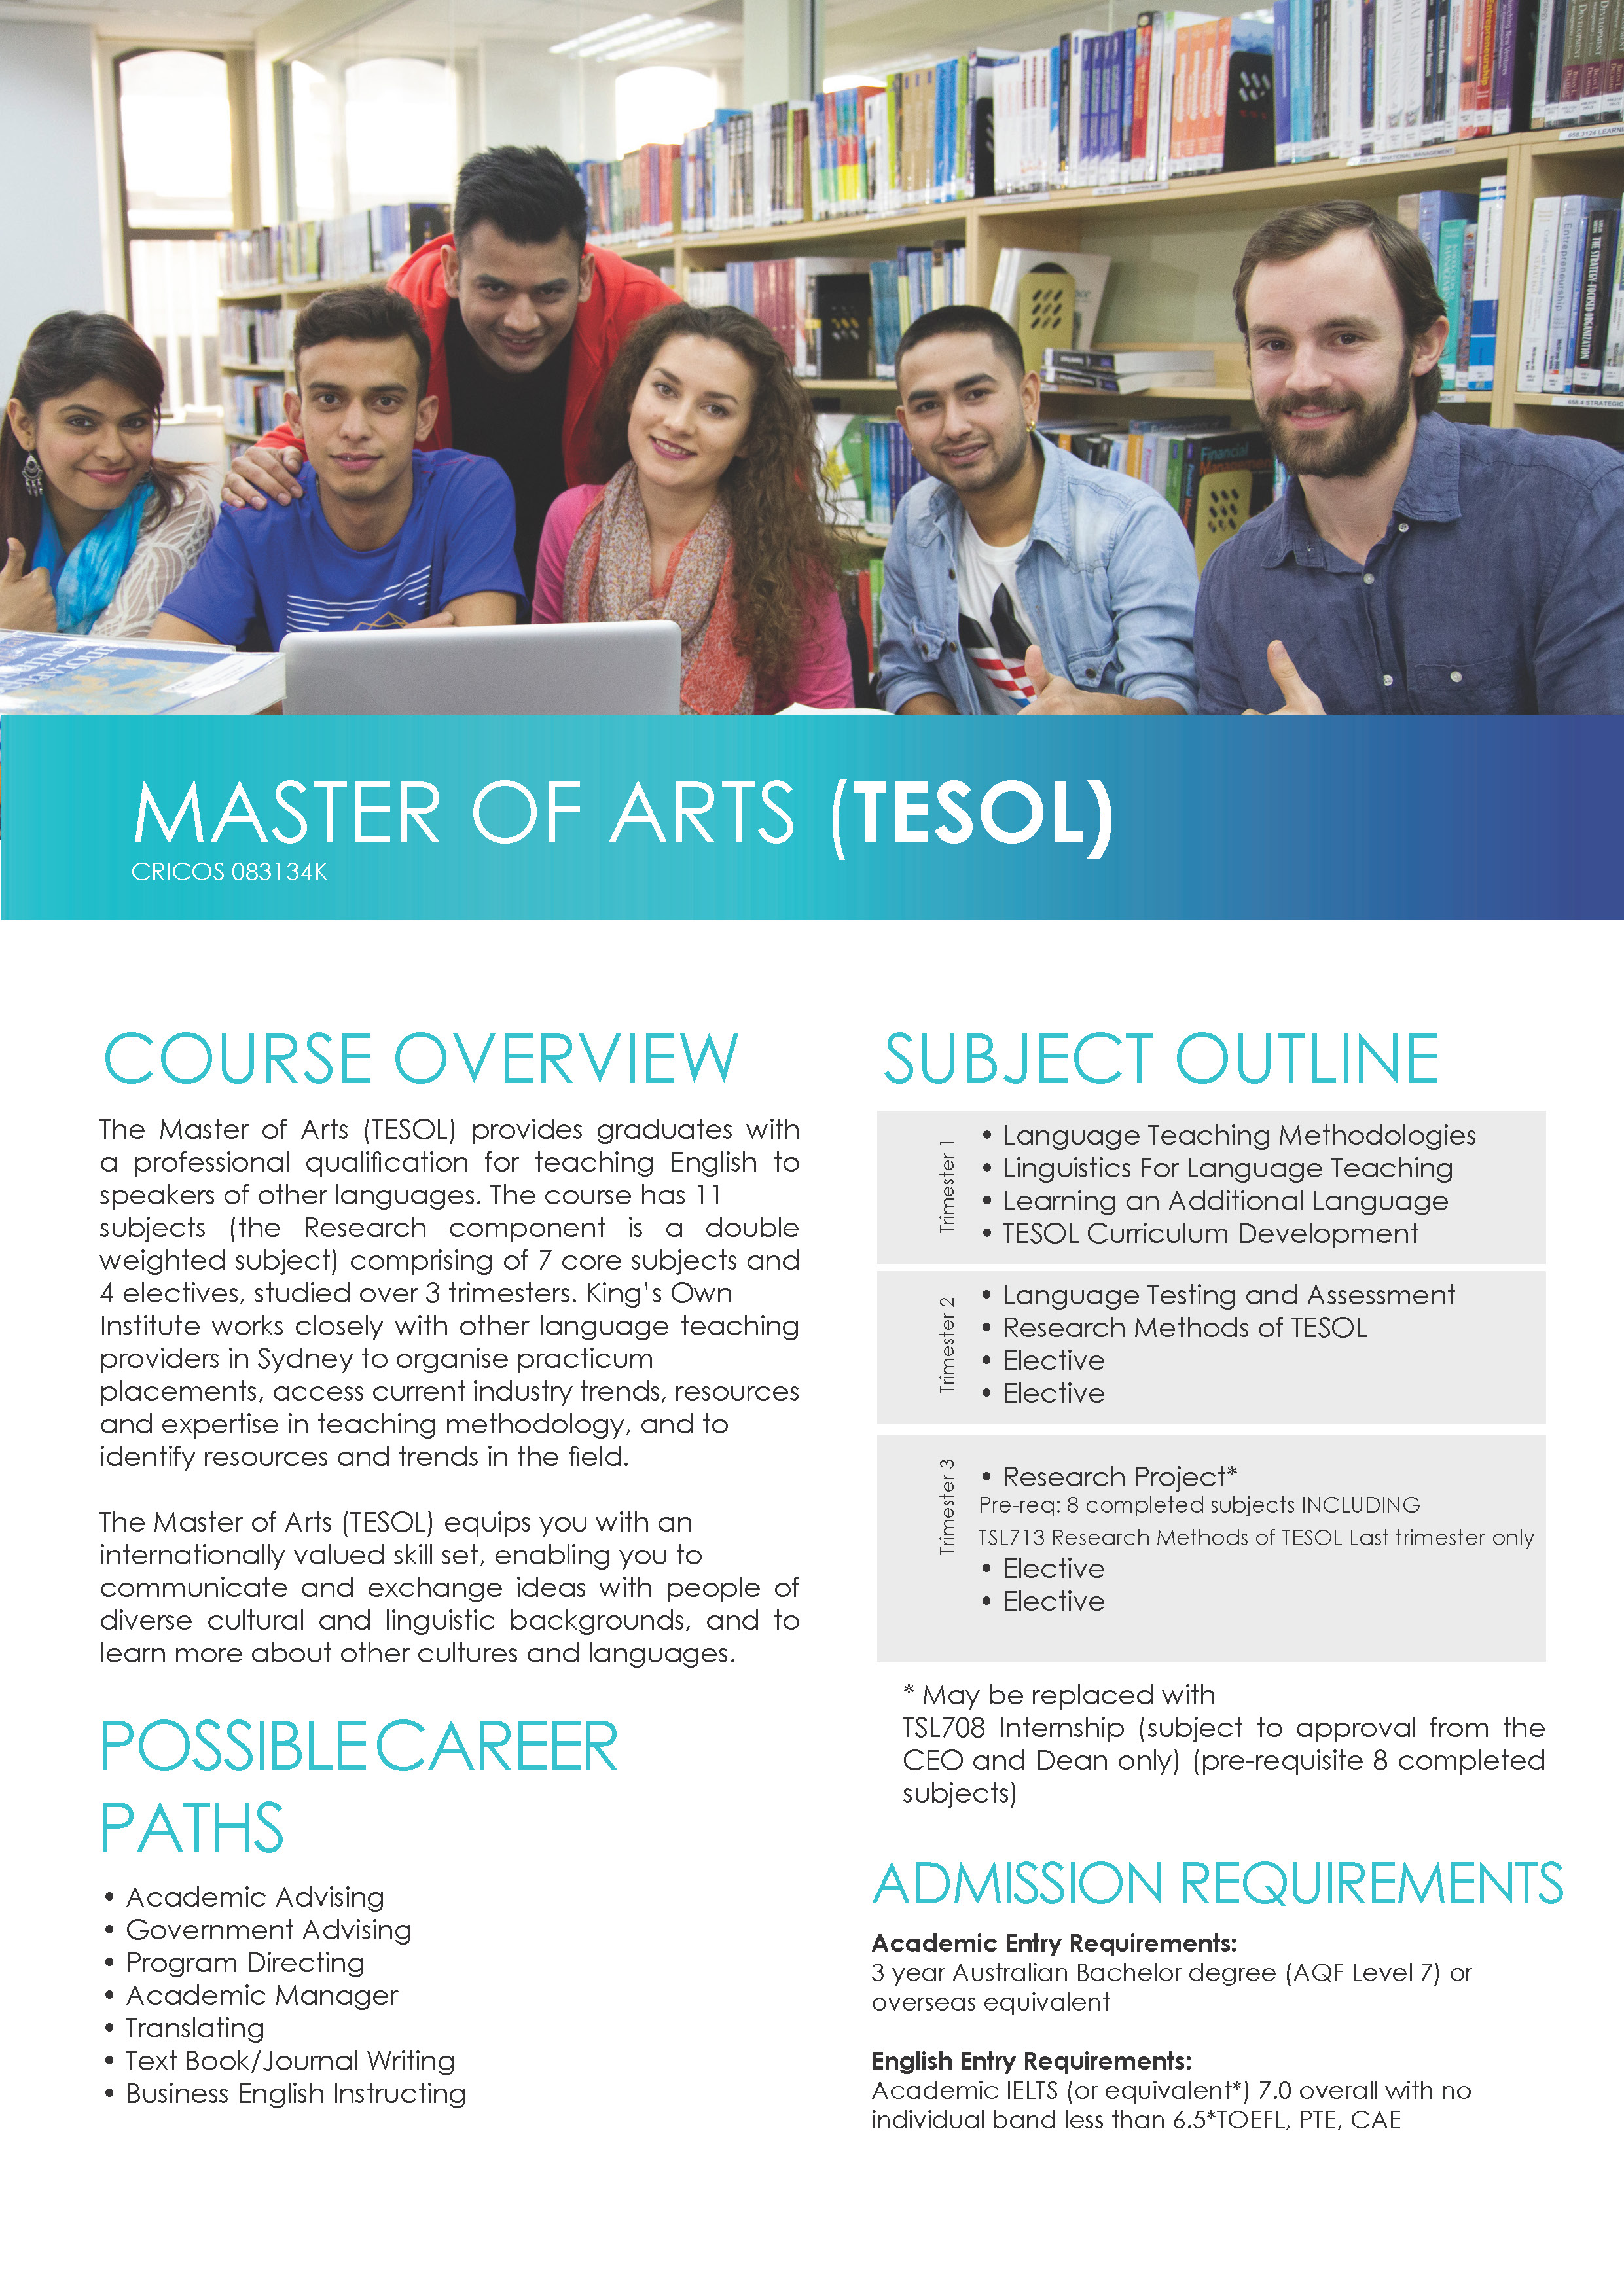 MASTER OF ARTS (TESOL)